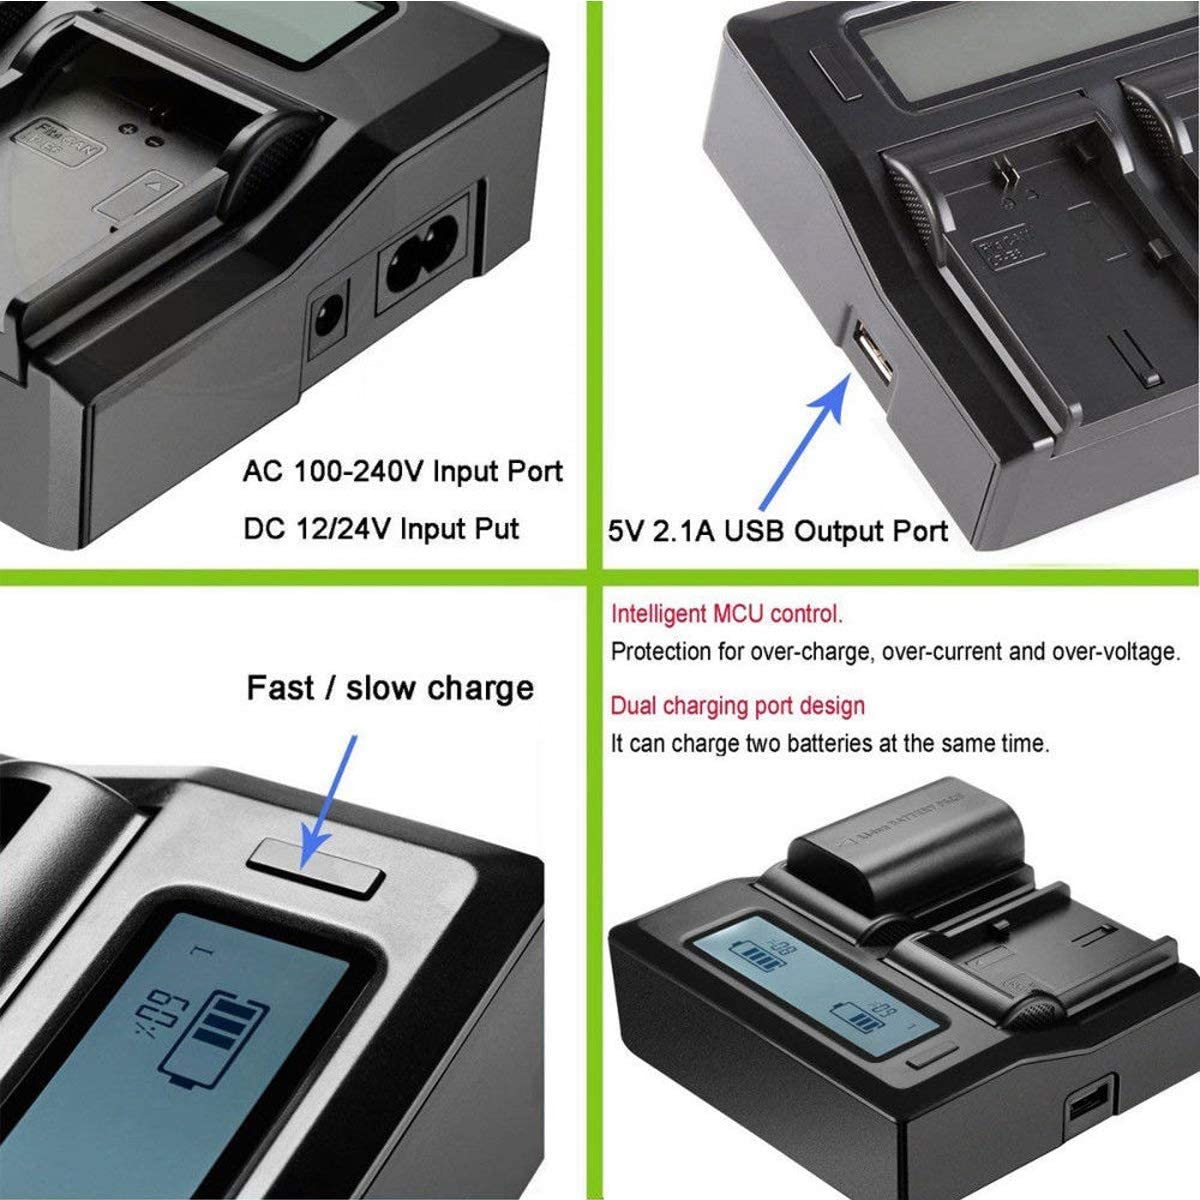 HDR-CX305E HDR-CX505VE Dual Channel Battery Charger for Sony HDR-CX105E HDR-CX535E Handycam Camcorder